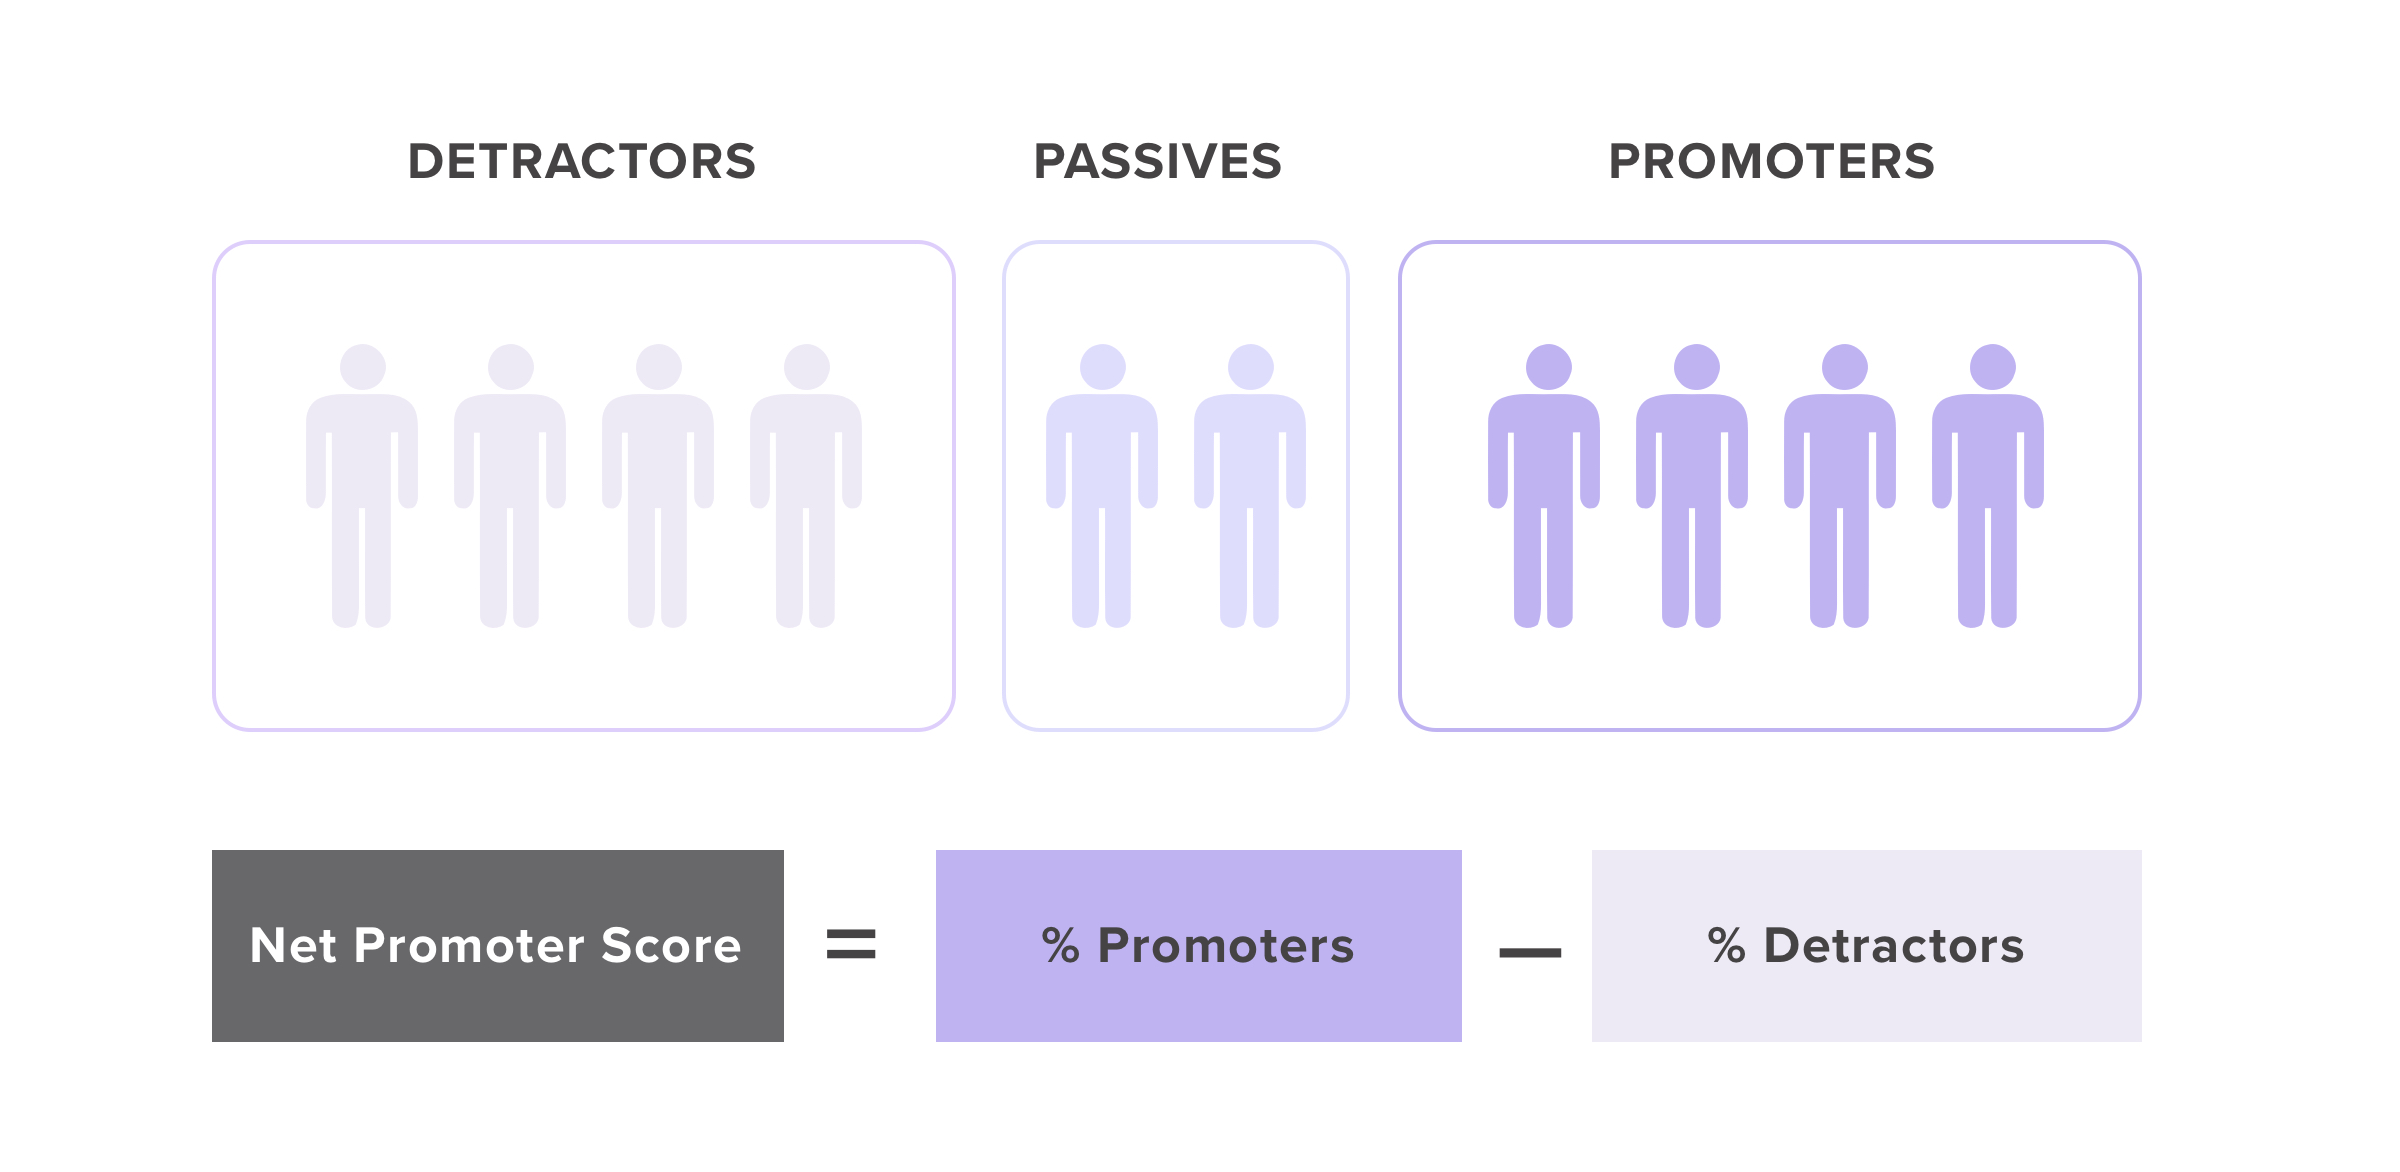 Net Promoter Score (NPS) calculation with detractors and promoters